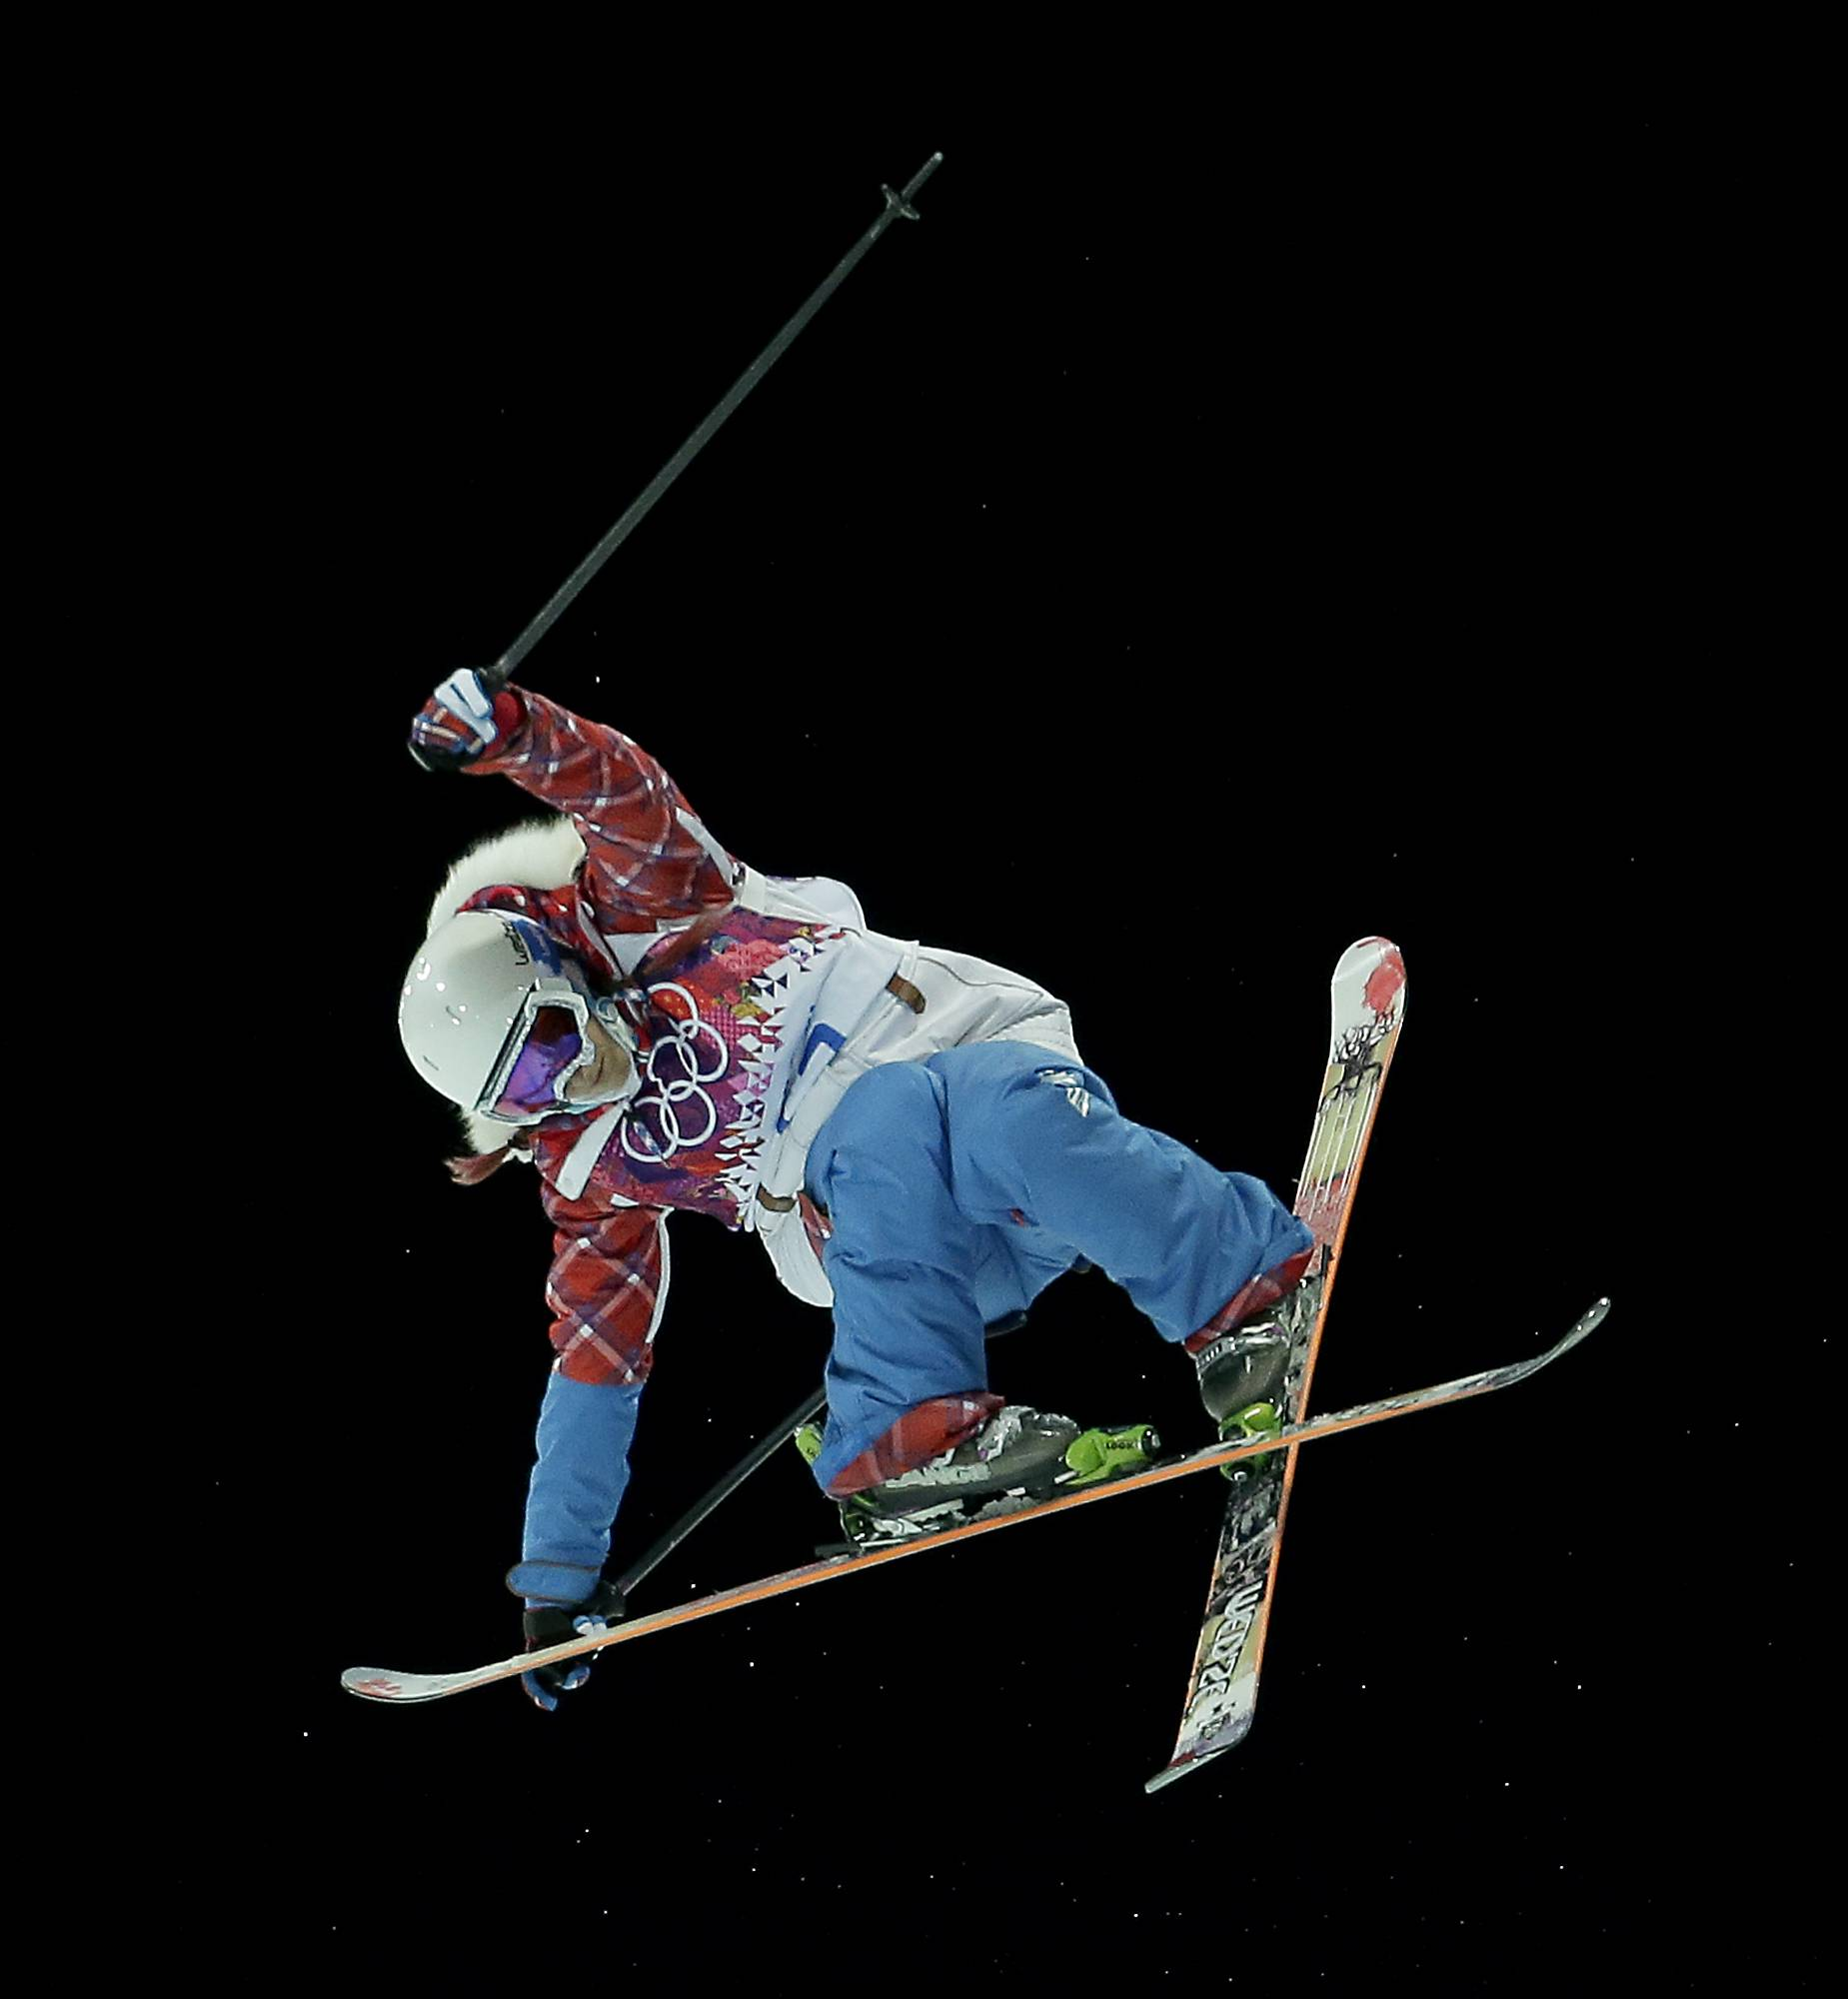 Silver medalist France's Marie Martinod competes Thursday in the women's ski halfpipe finals at the Rosa Khutor Extreme Park during the 2014 Winter Olympics in Krasnaya Polyana, Russia.